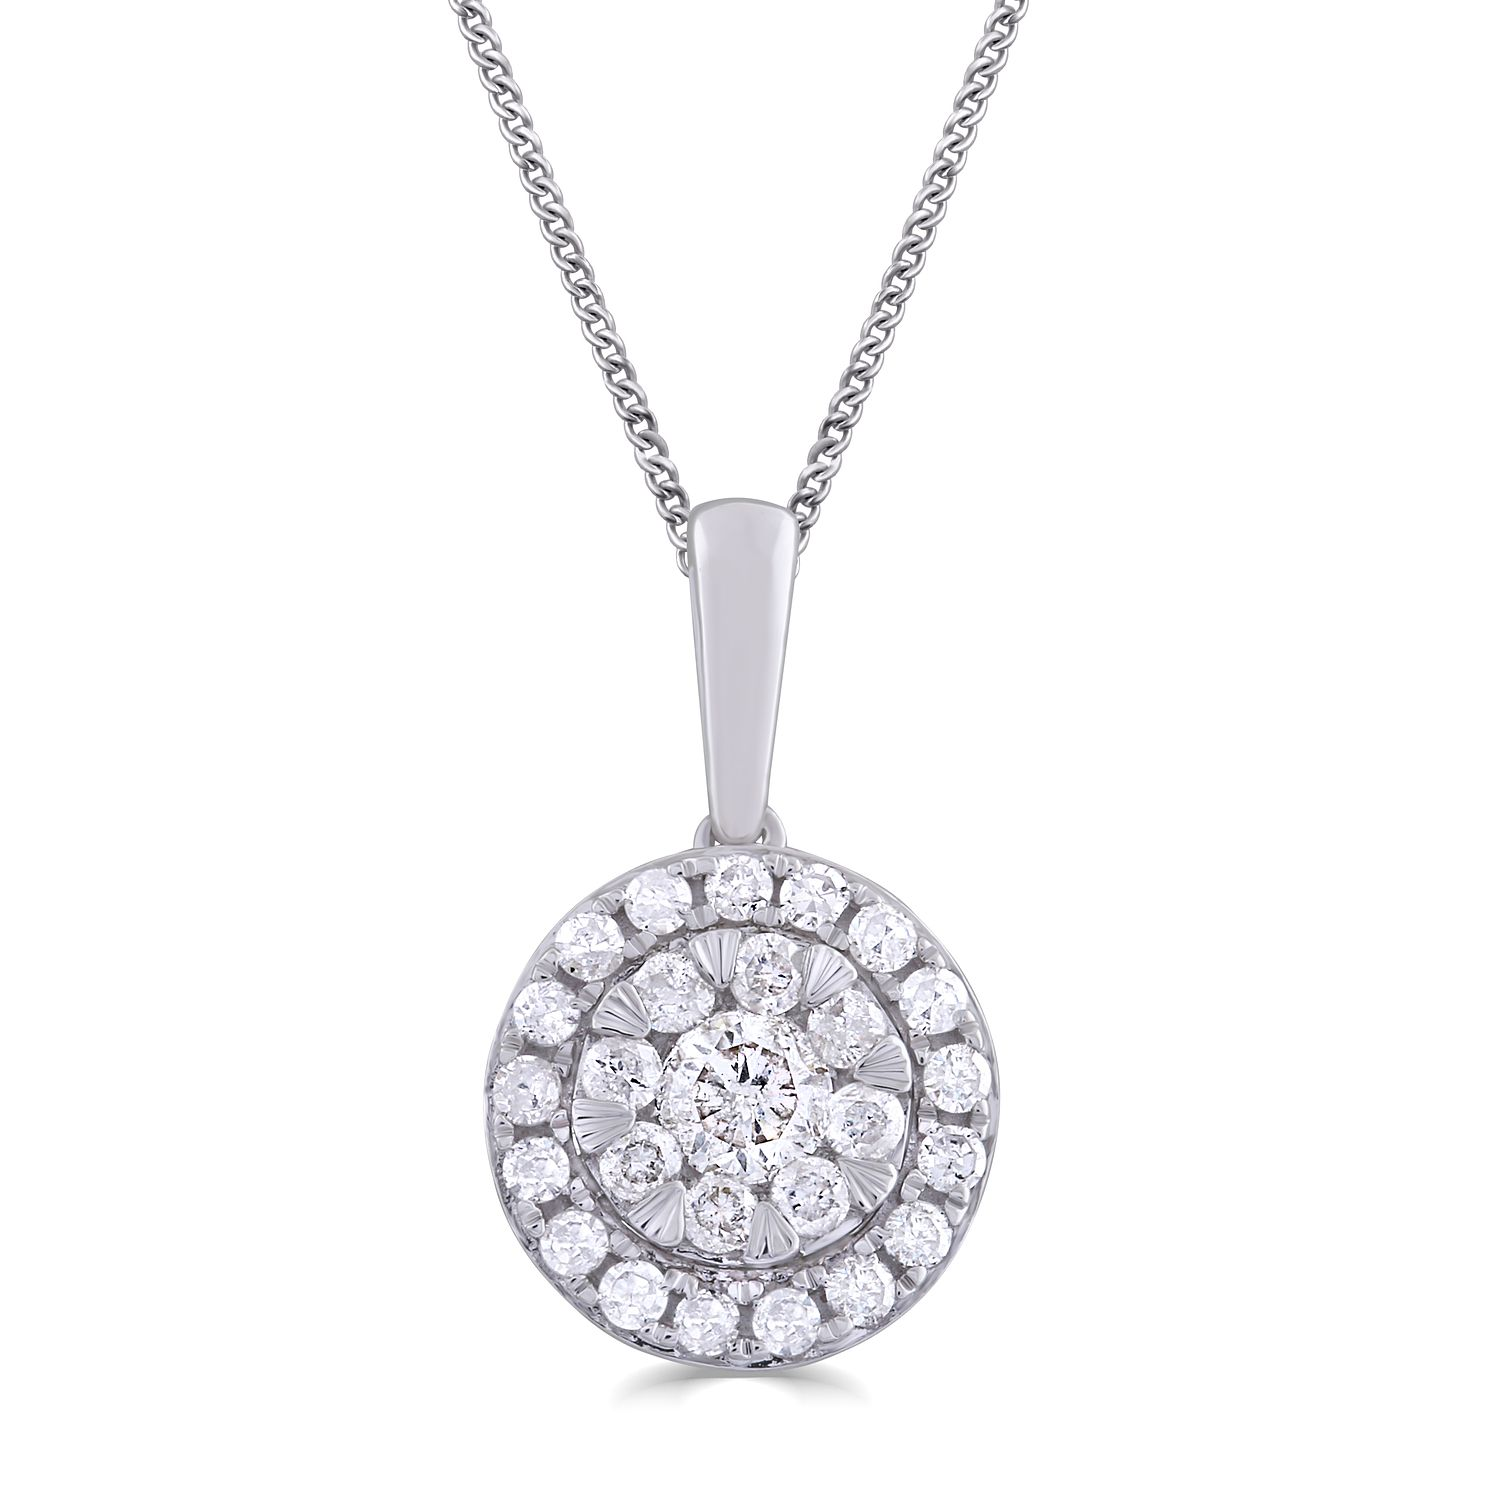 9ct White Gold & 1/3ct Round Diamond Pendant - Product number 5033055